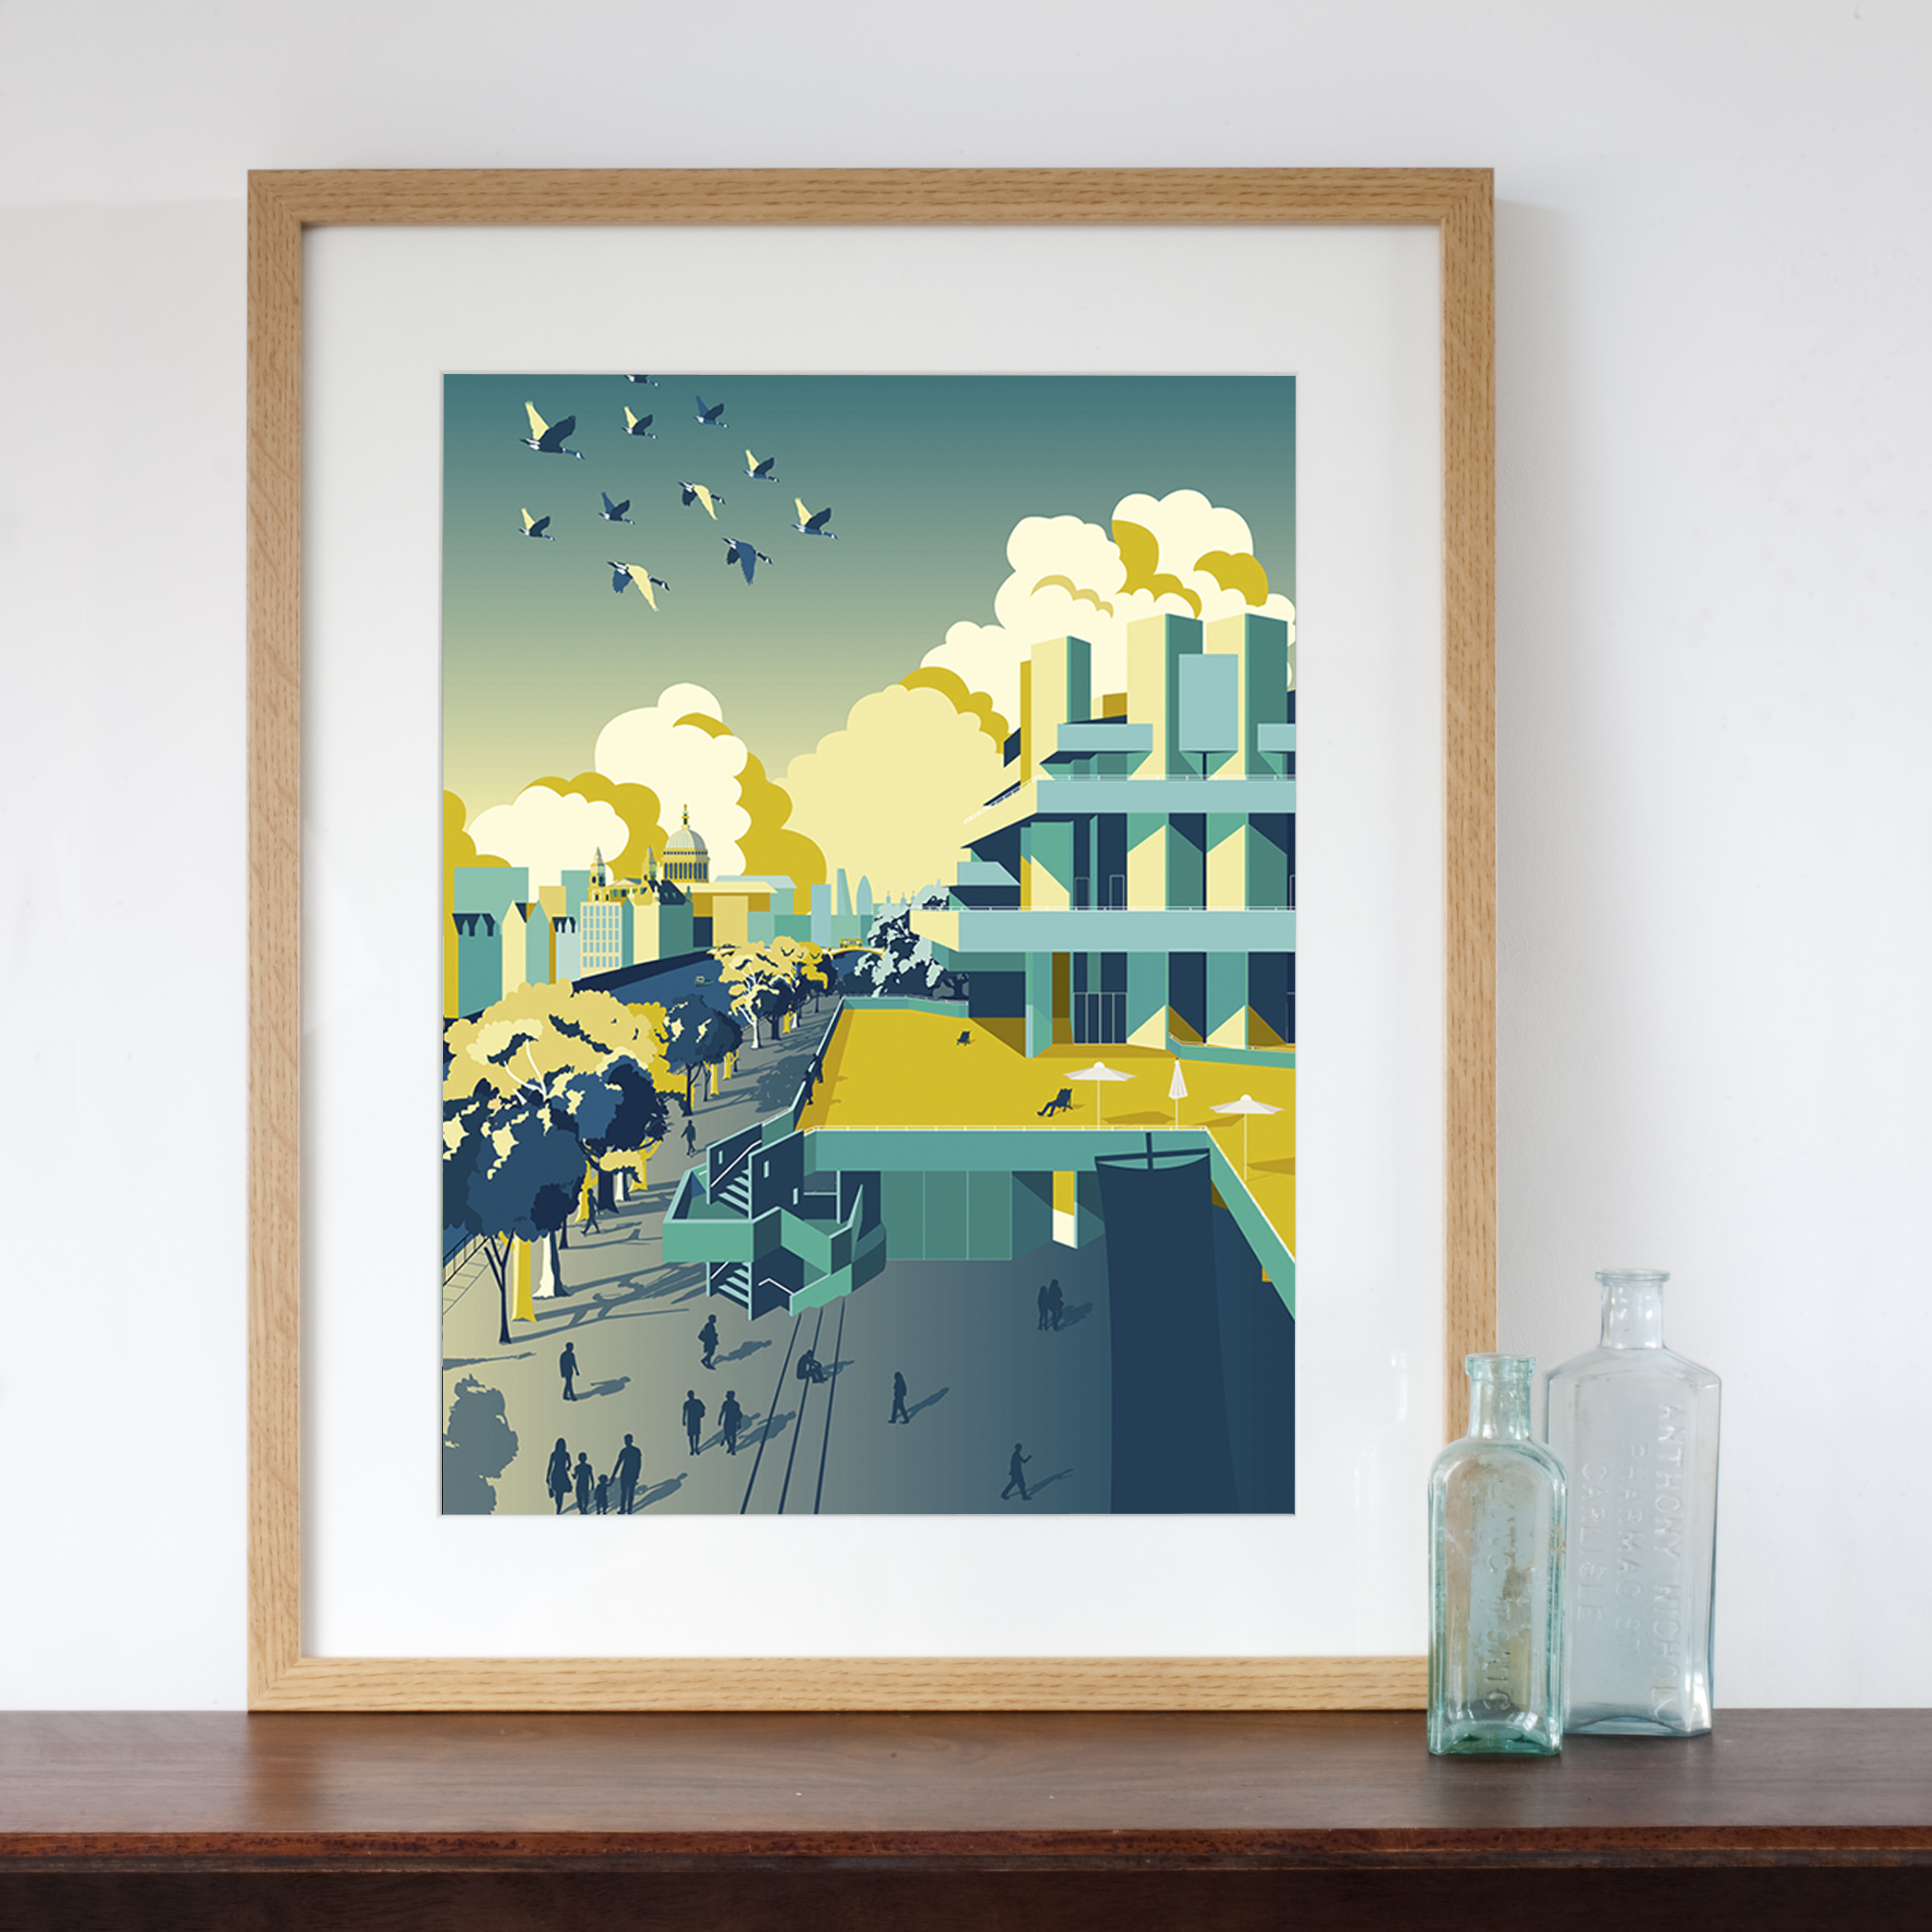 Retro Kitchen Shelves Art Print By Natalie Singh: Waterloo Sunset Art Print With The National Theatre A2